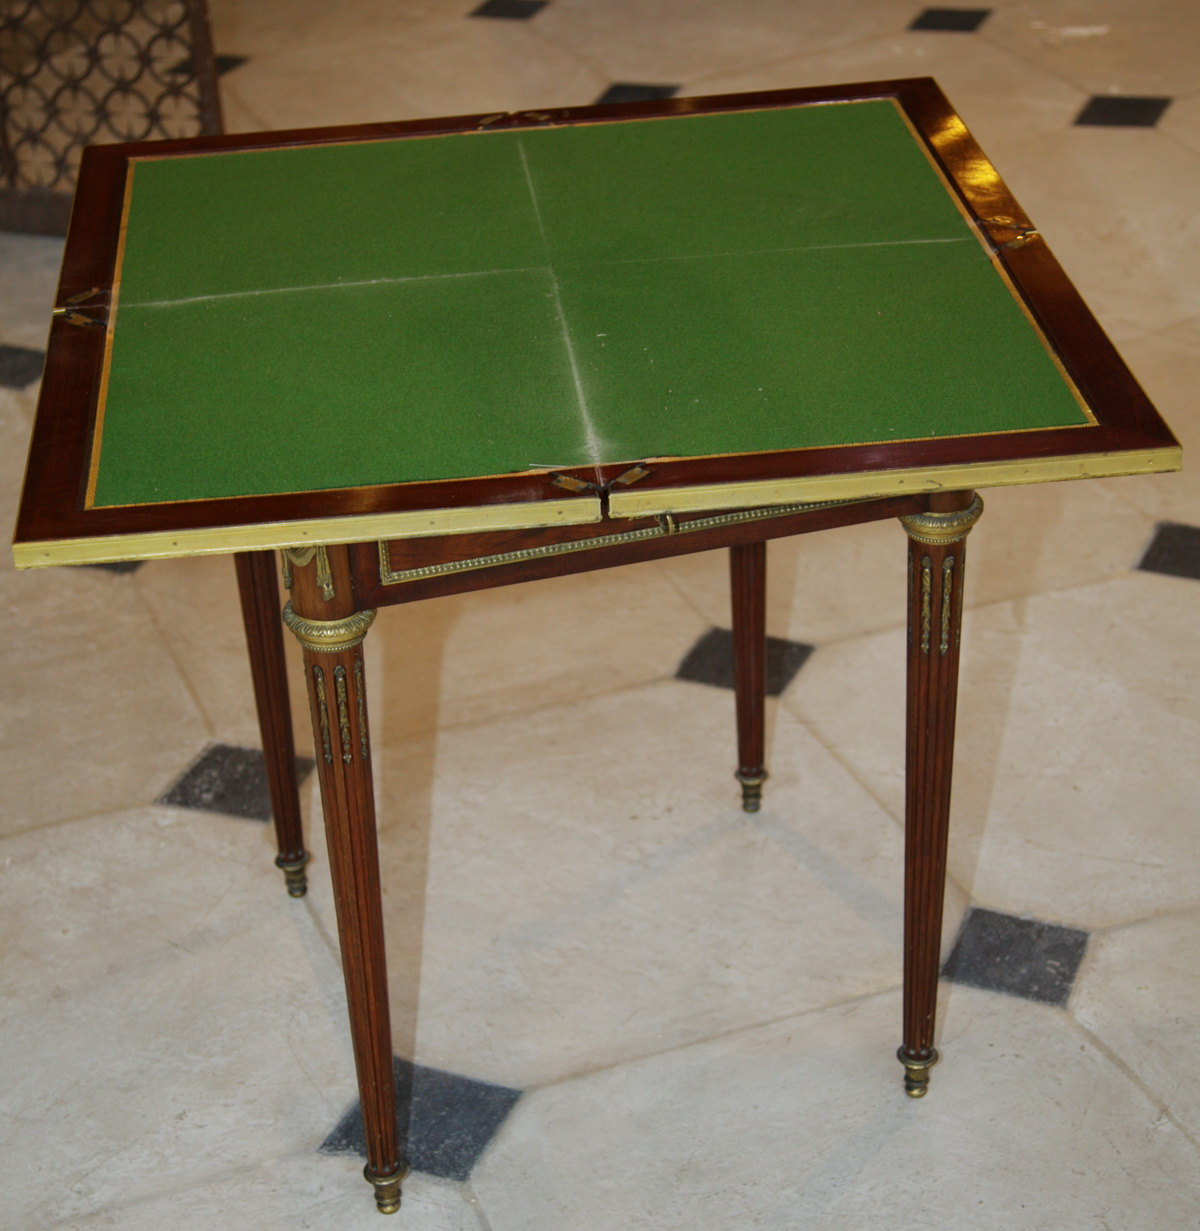 Table à jeu mouchoir 1870